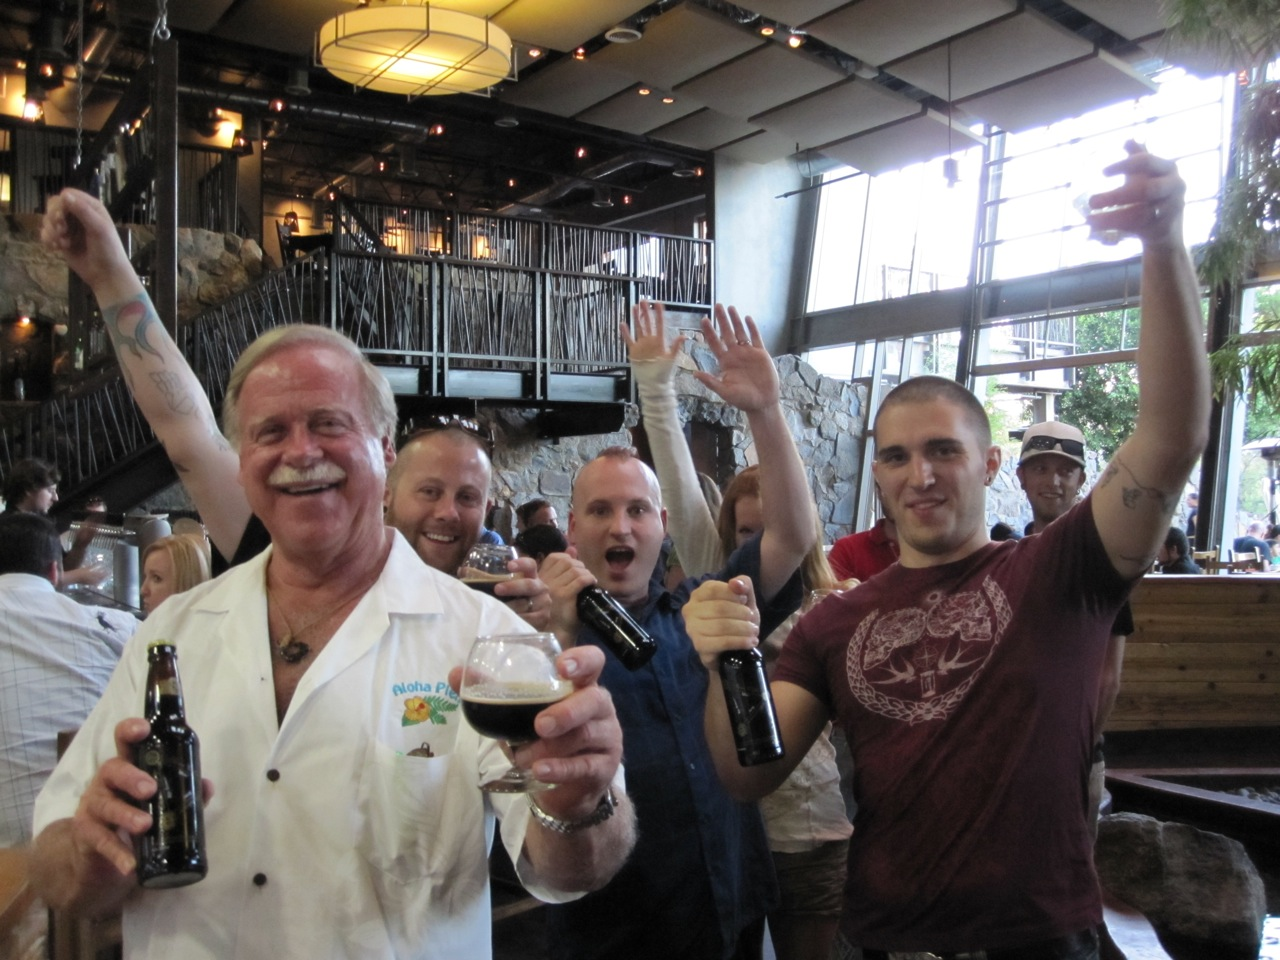 Ken Schmidt celebrating with fellow craft beer revelers in the Bistro on Monday night for our Ken Schmidt GABF Send-off Party